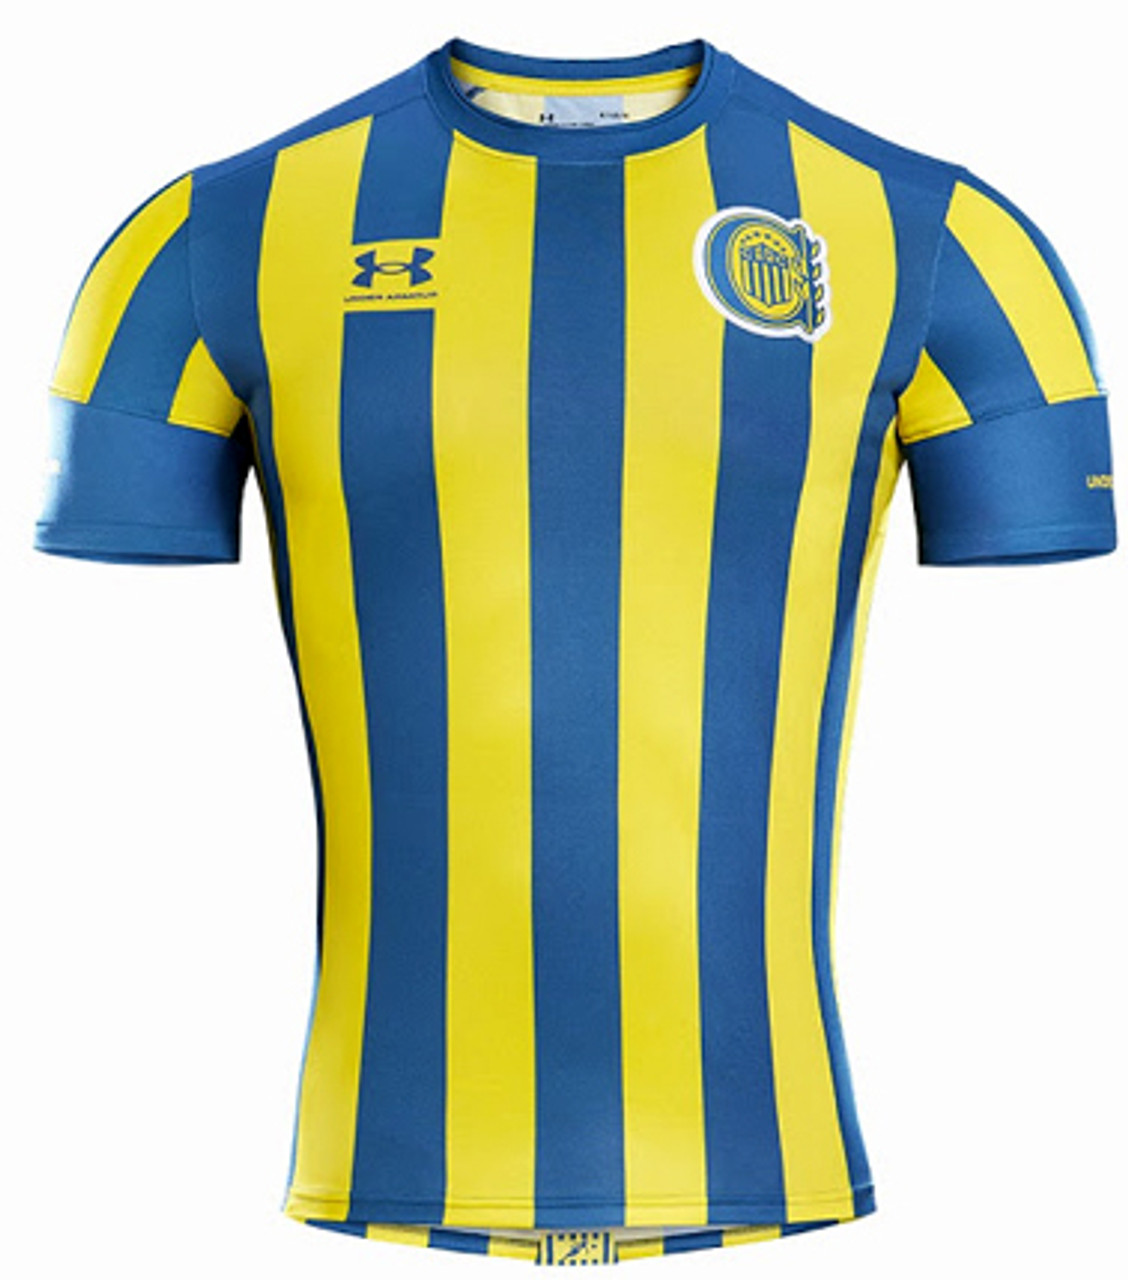 UNDER ARMOUR ROSARIO CENTRAL 20 HOME JERSEY